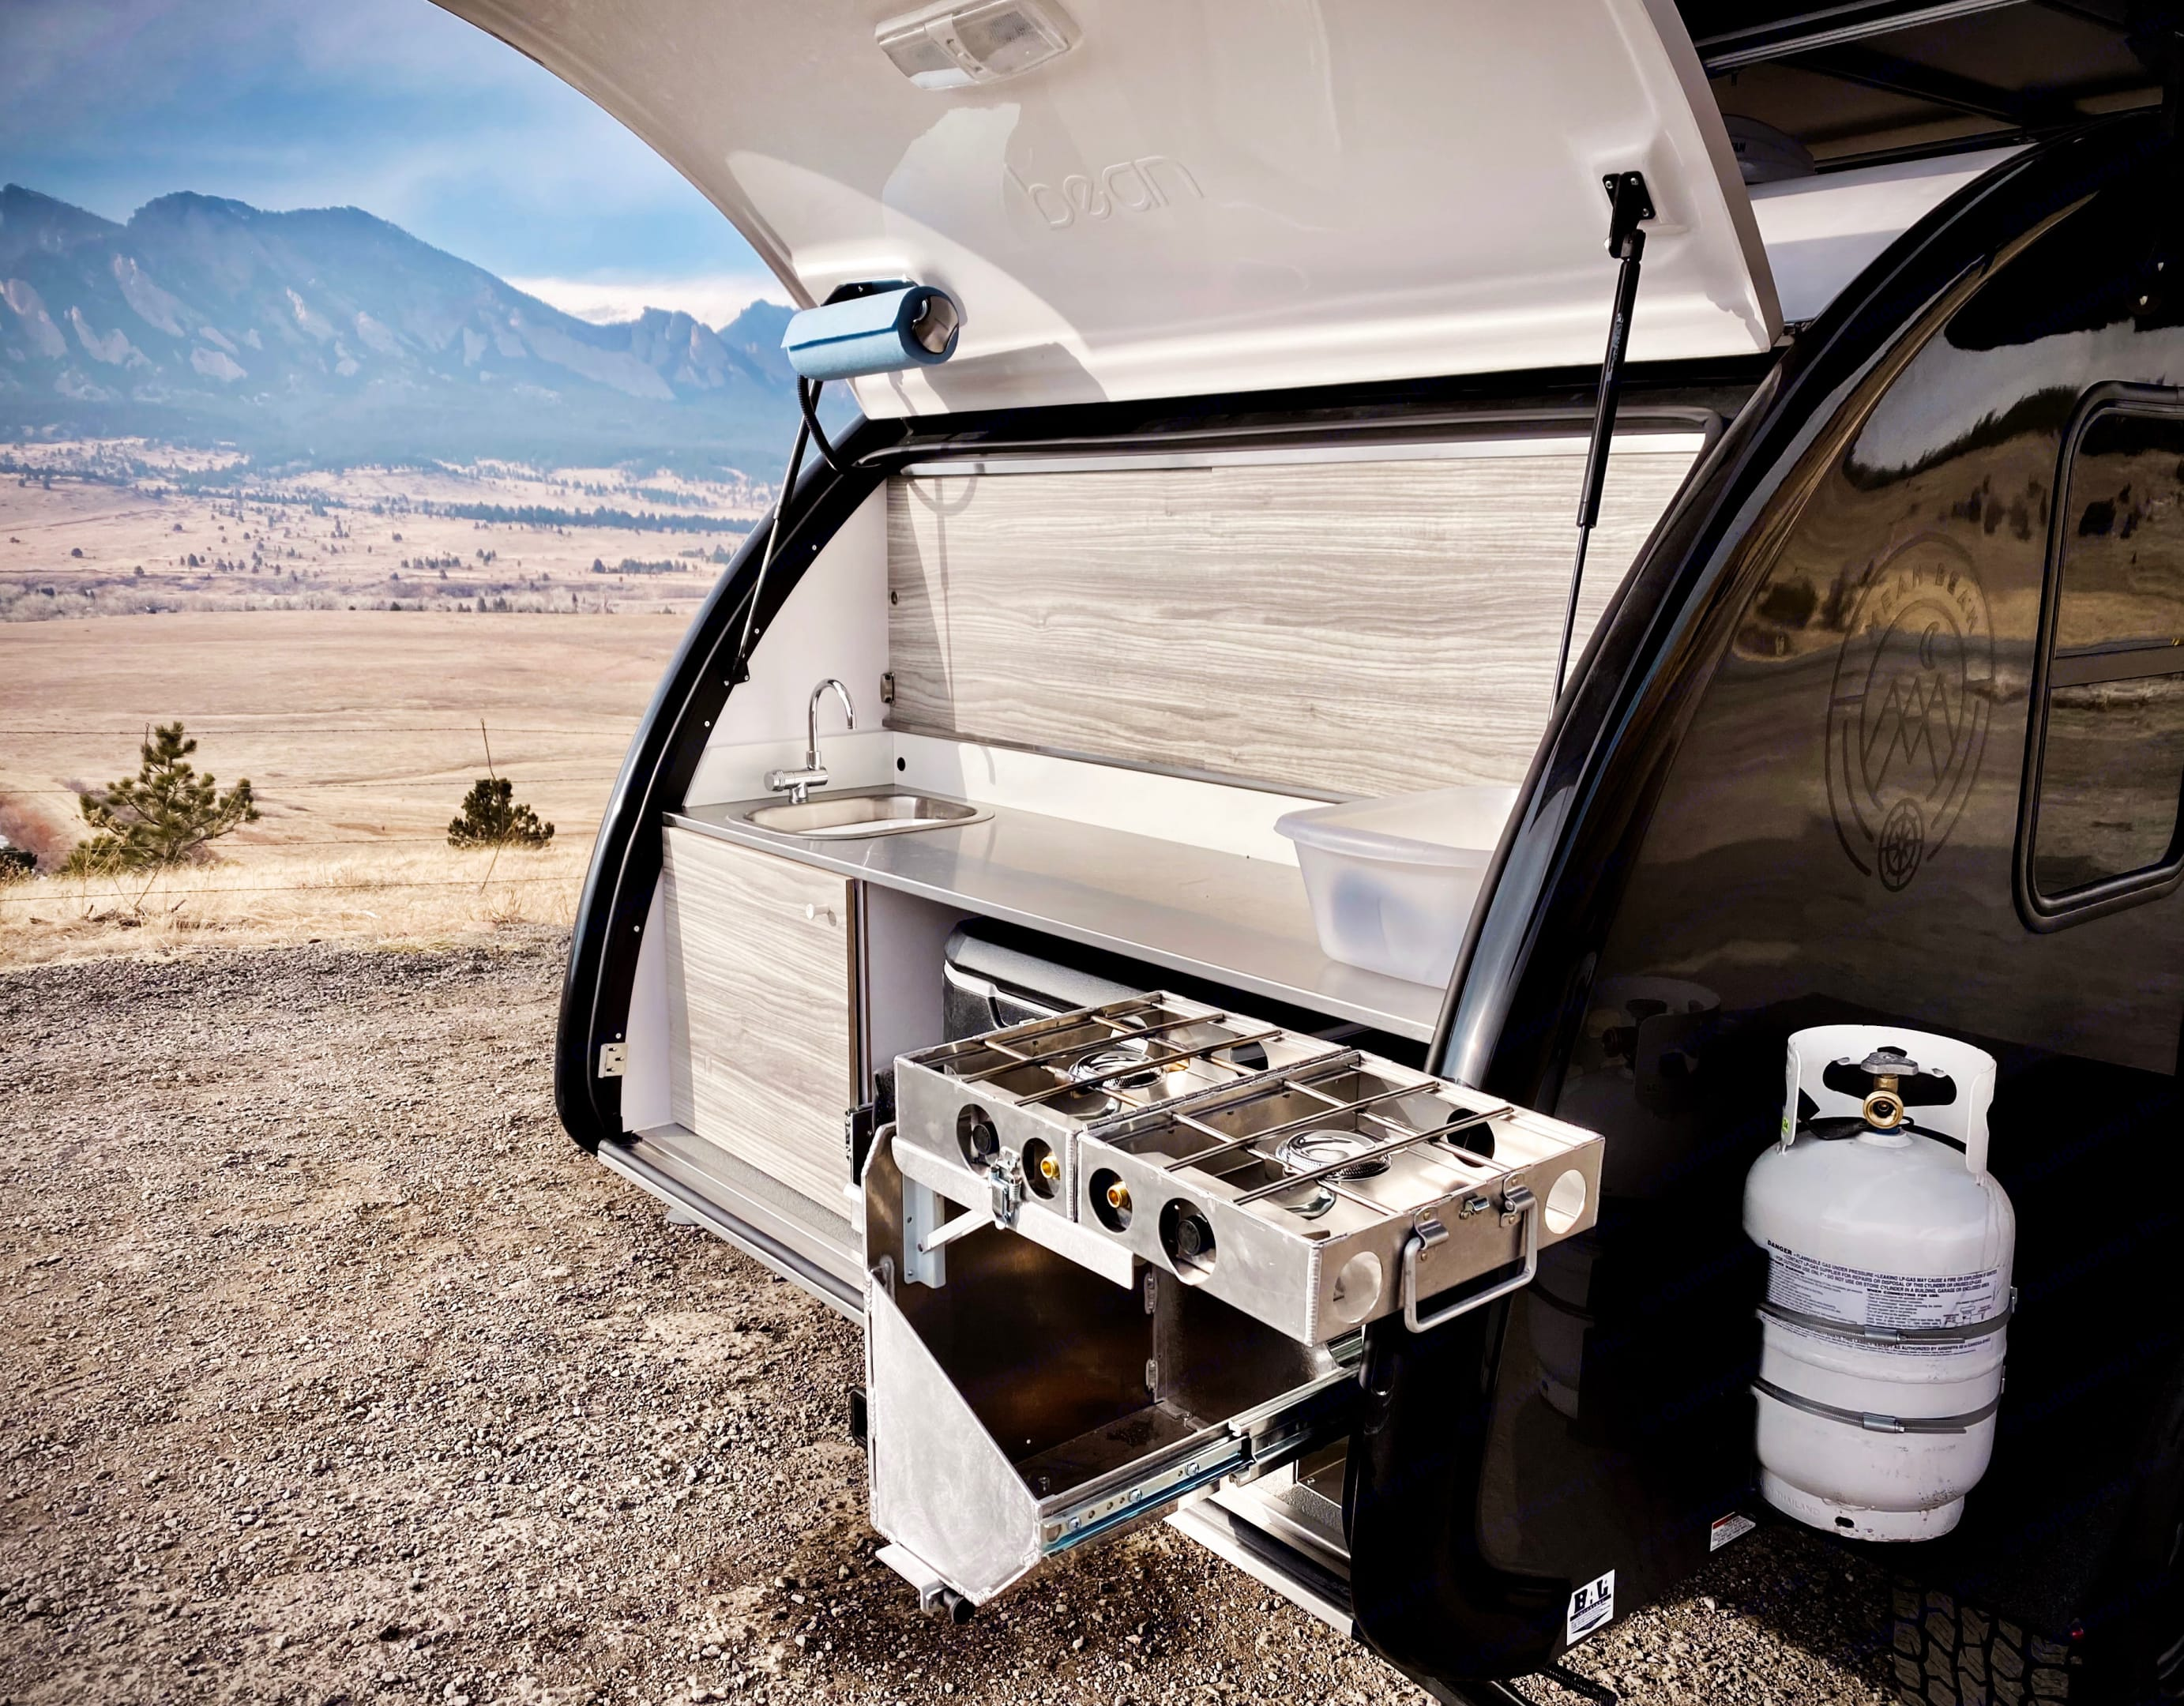 Mobi the Mean Bean Teardrop from Camp Boulder has a durable Camp Partner stove.  It's probably nicer than what's in your own home kitchen!. Bean Teardrop Trailer Mean Bean 2021